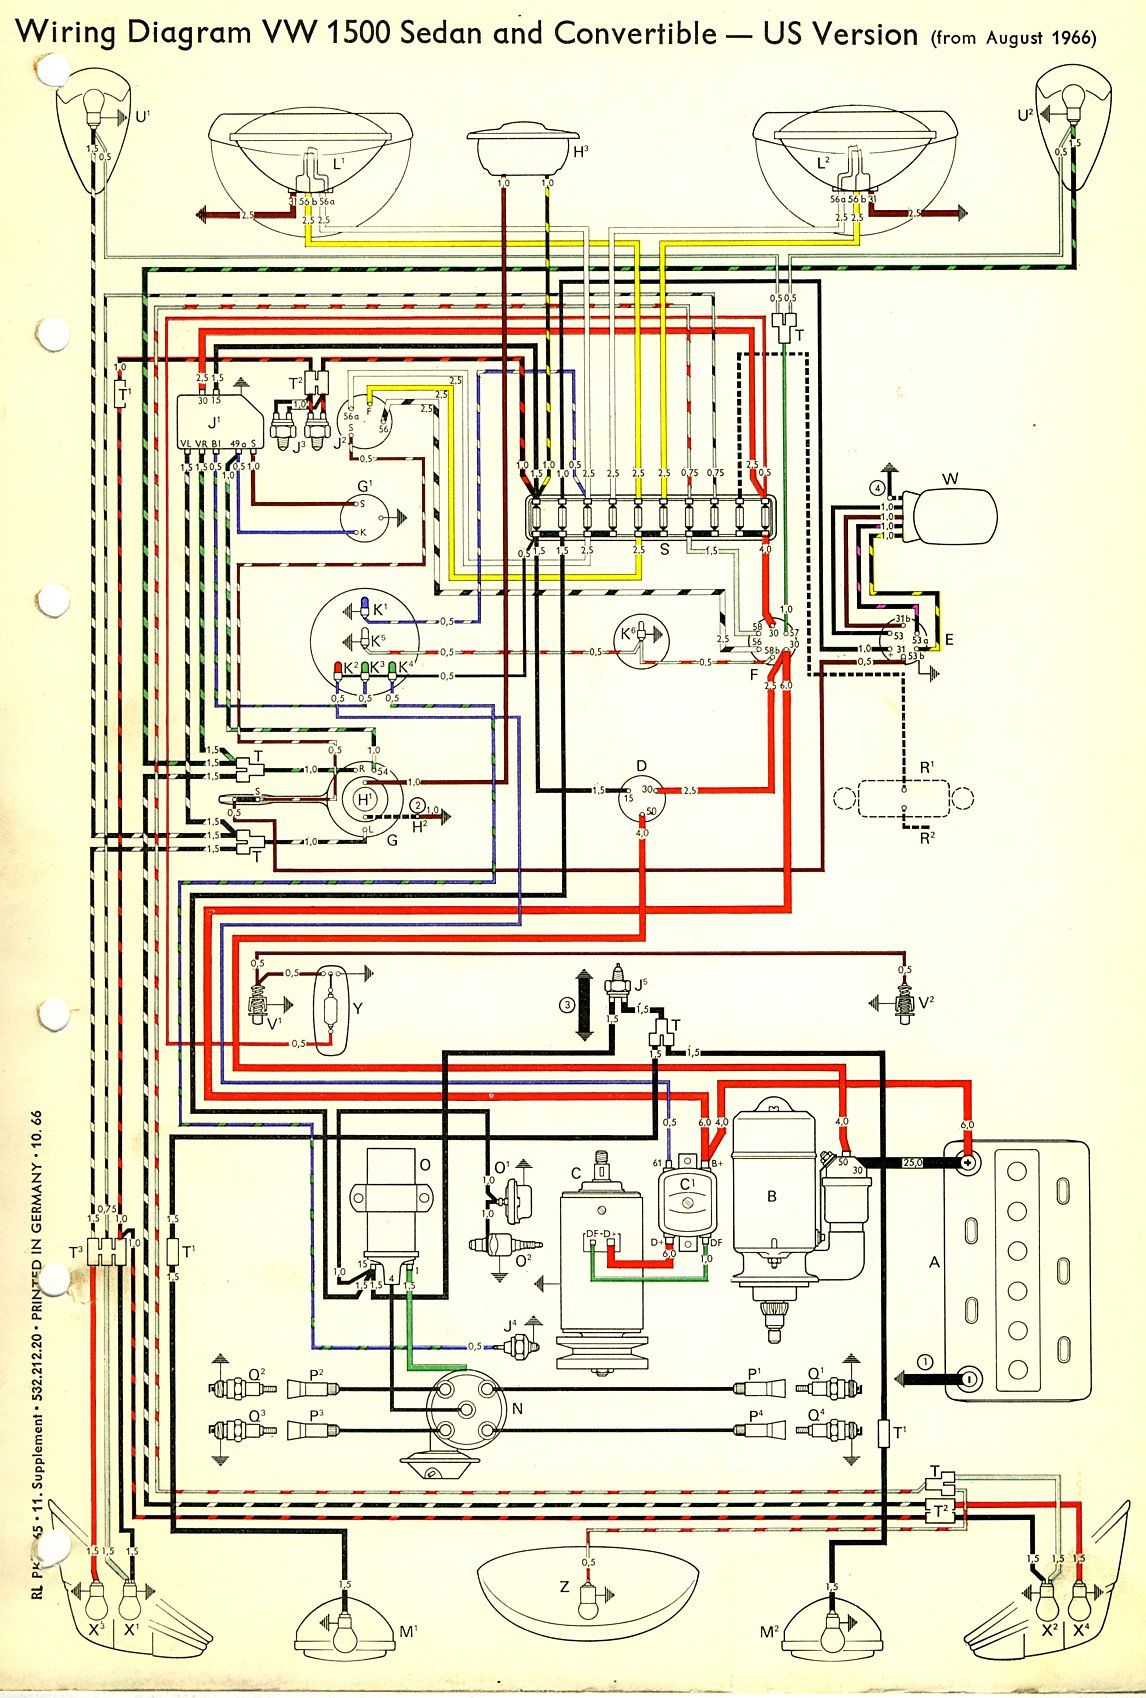 1adf990c0efb617c789fdd21338448b0 1967 beetle wiring diagram (usa) thegoldenbug com best 1967 vw vw beetle 2002 radio wiring diagram at edmiracle.co